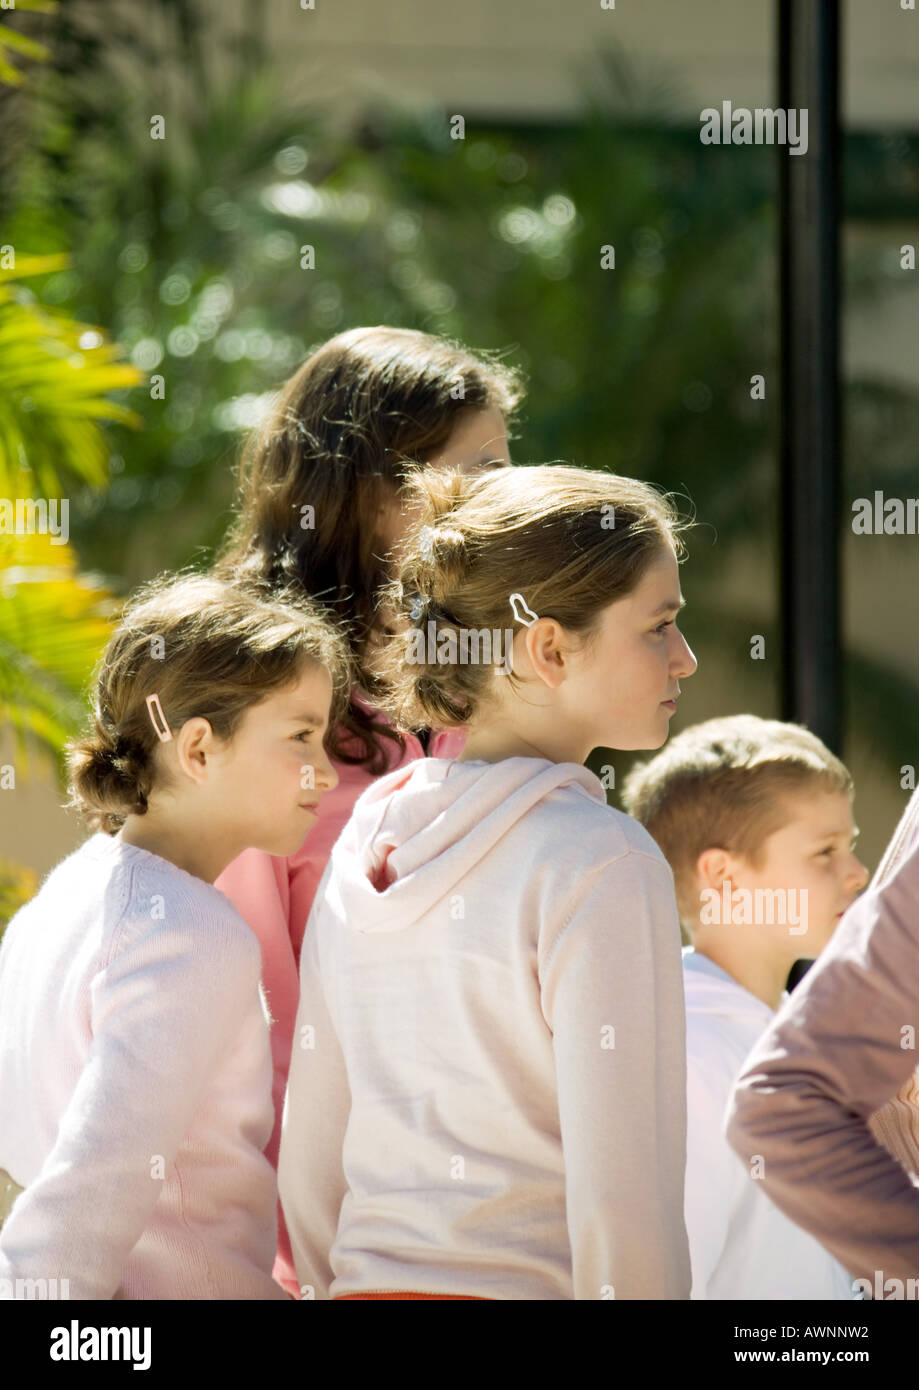 Group of children, looking in same direction - Stock Image